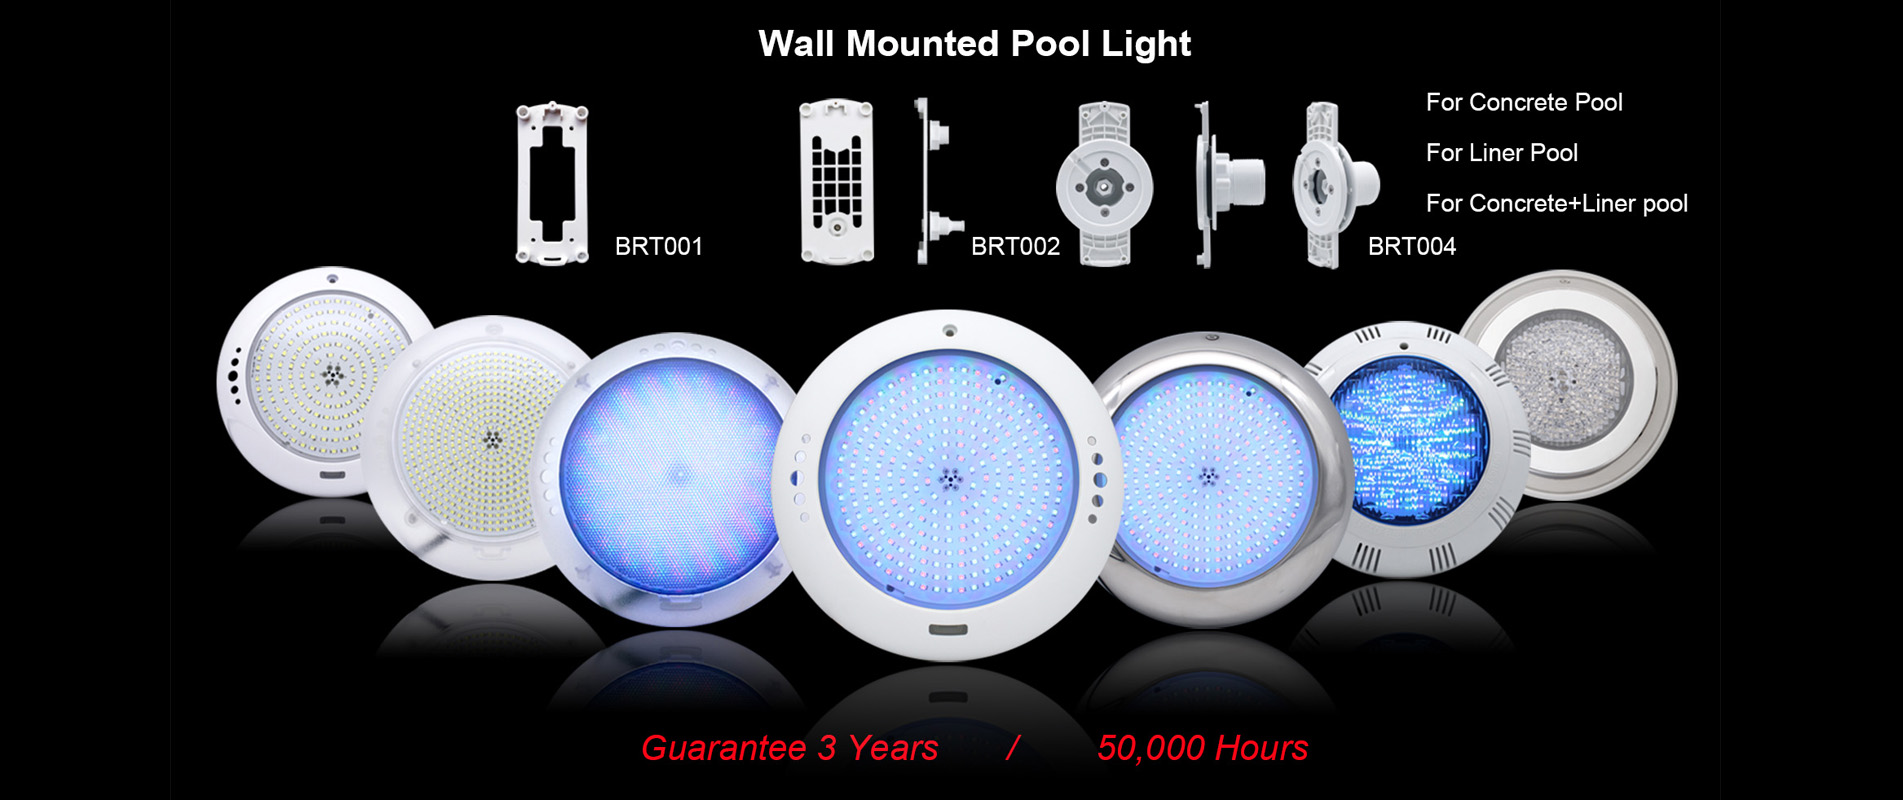 Wall Mounted Pool Lights